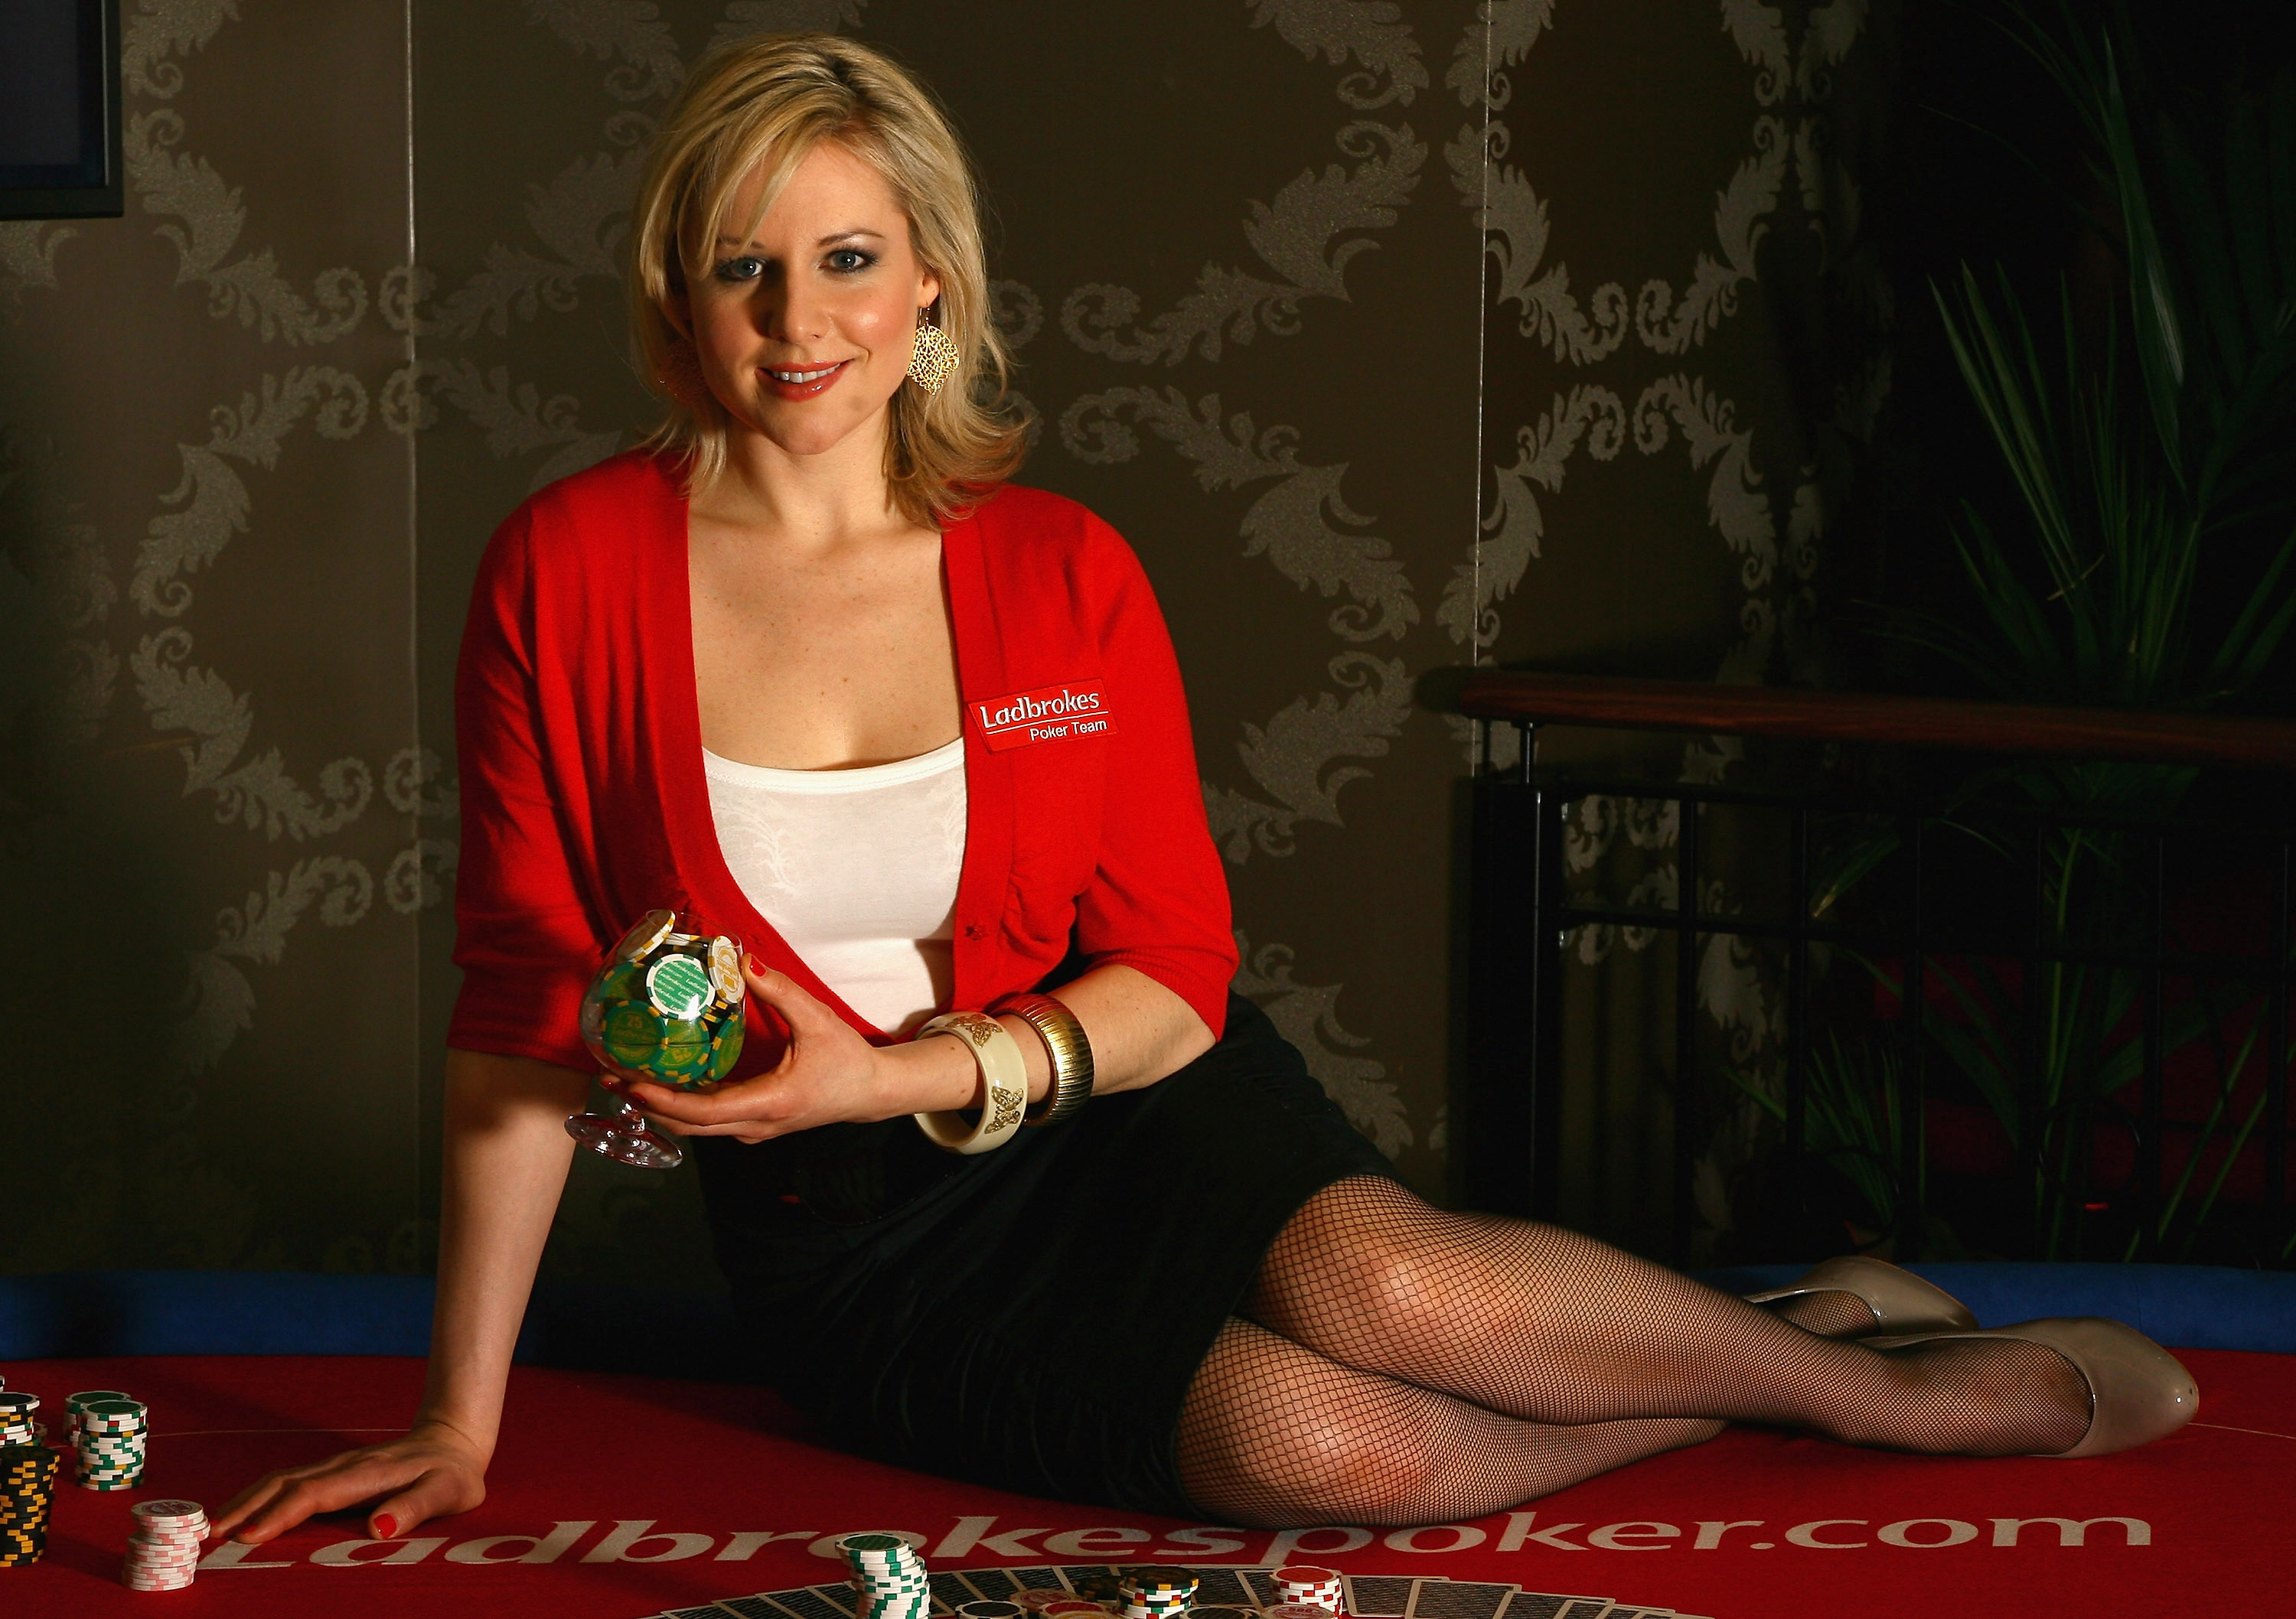 abi titmuss poker ladbrokes Written and directed by Kevin Smith, Red State movie is an upcoming suspense ...